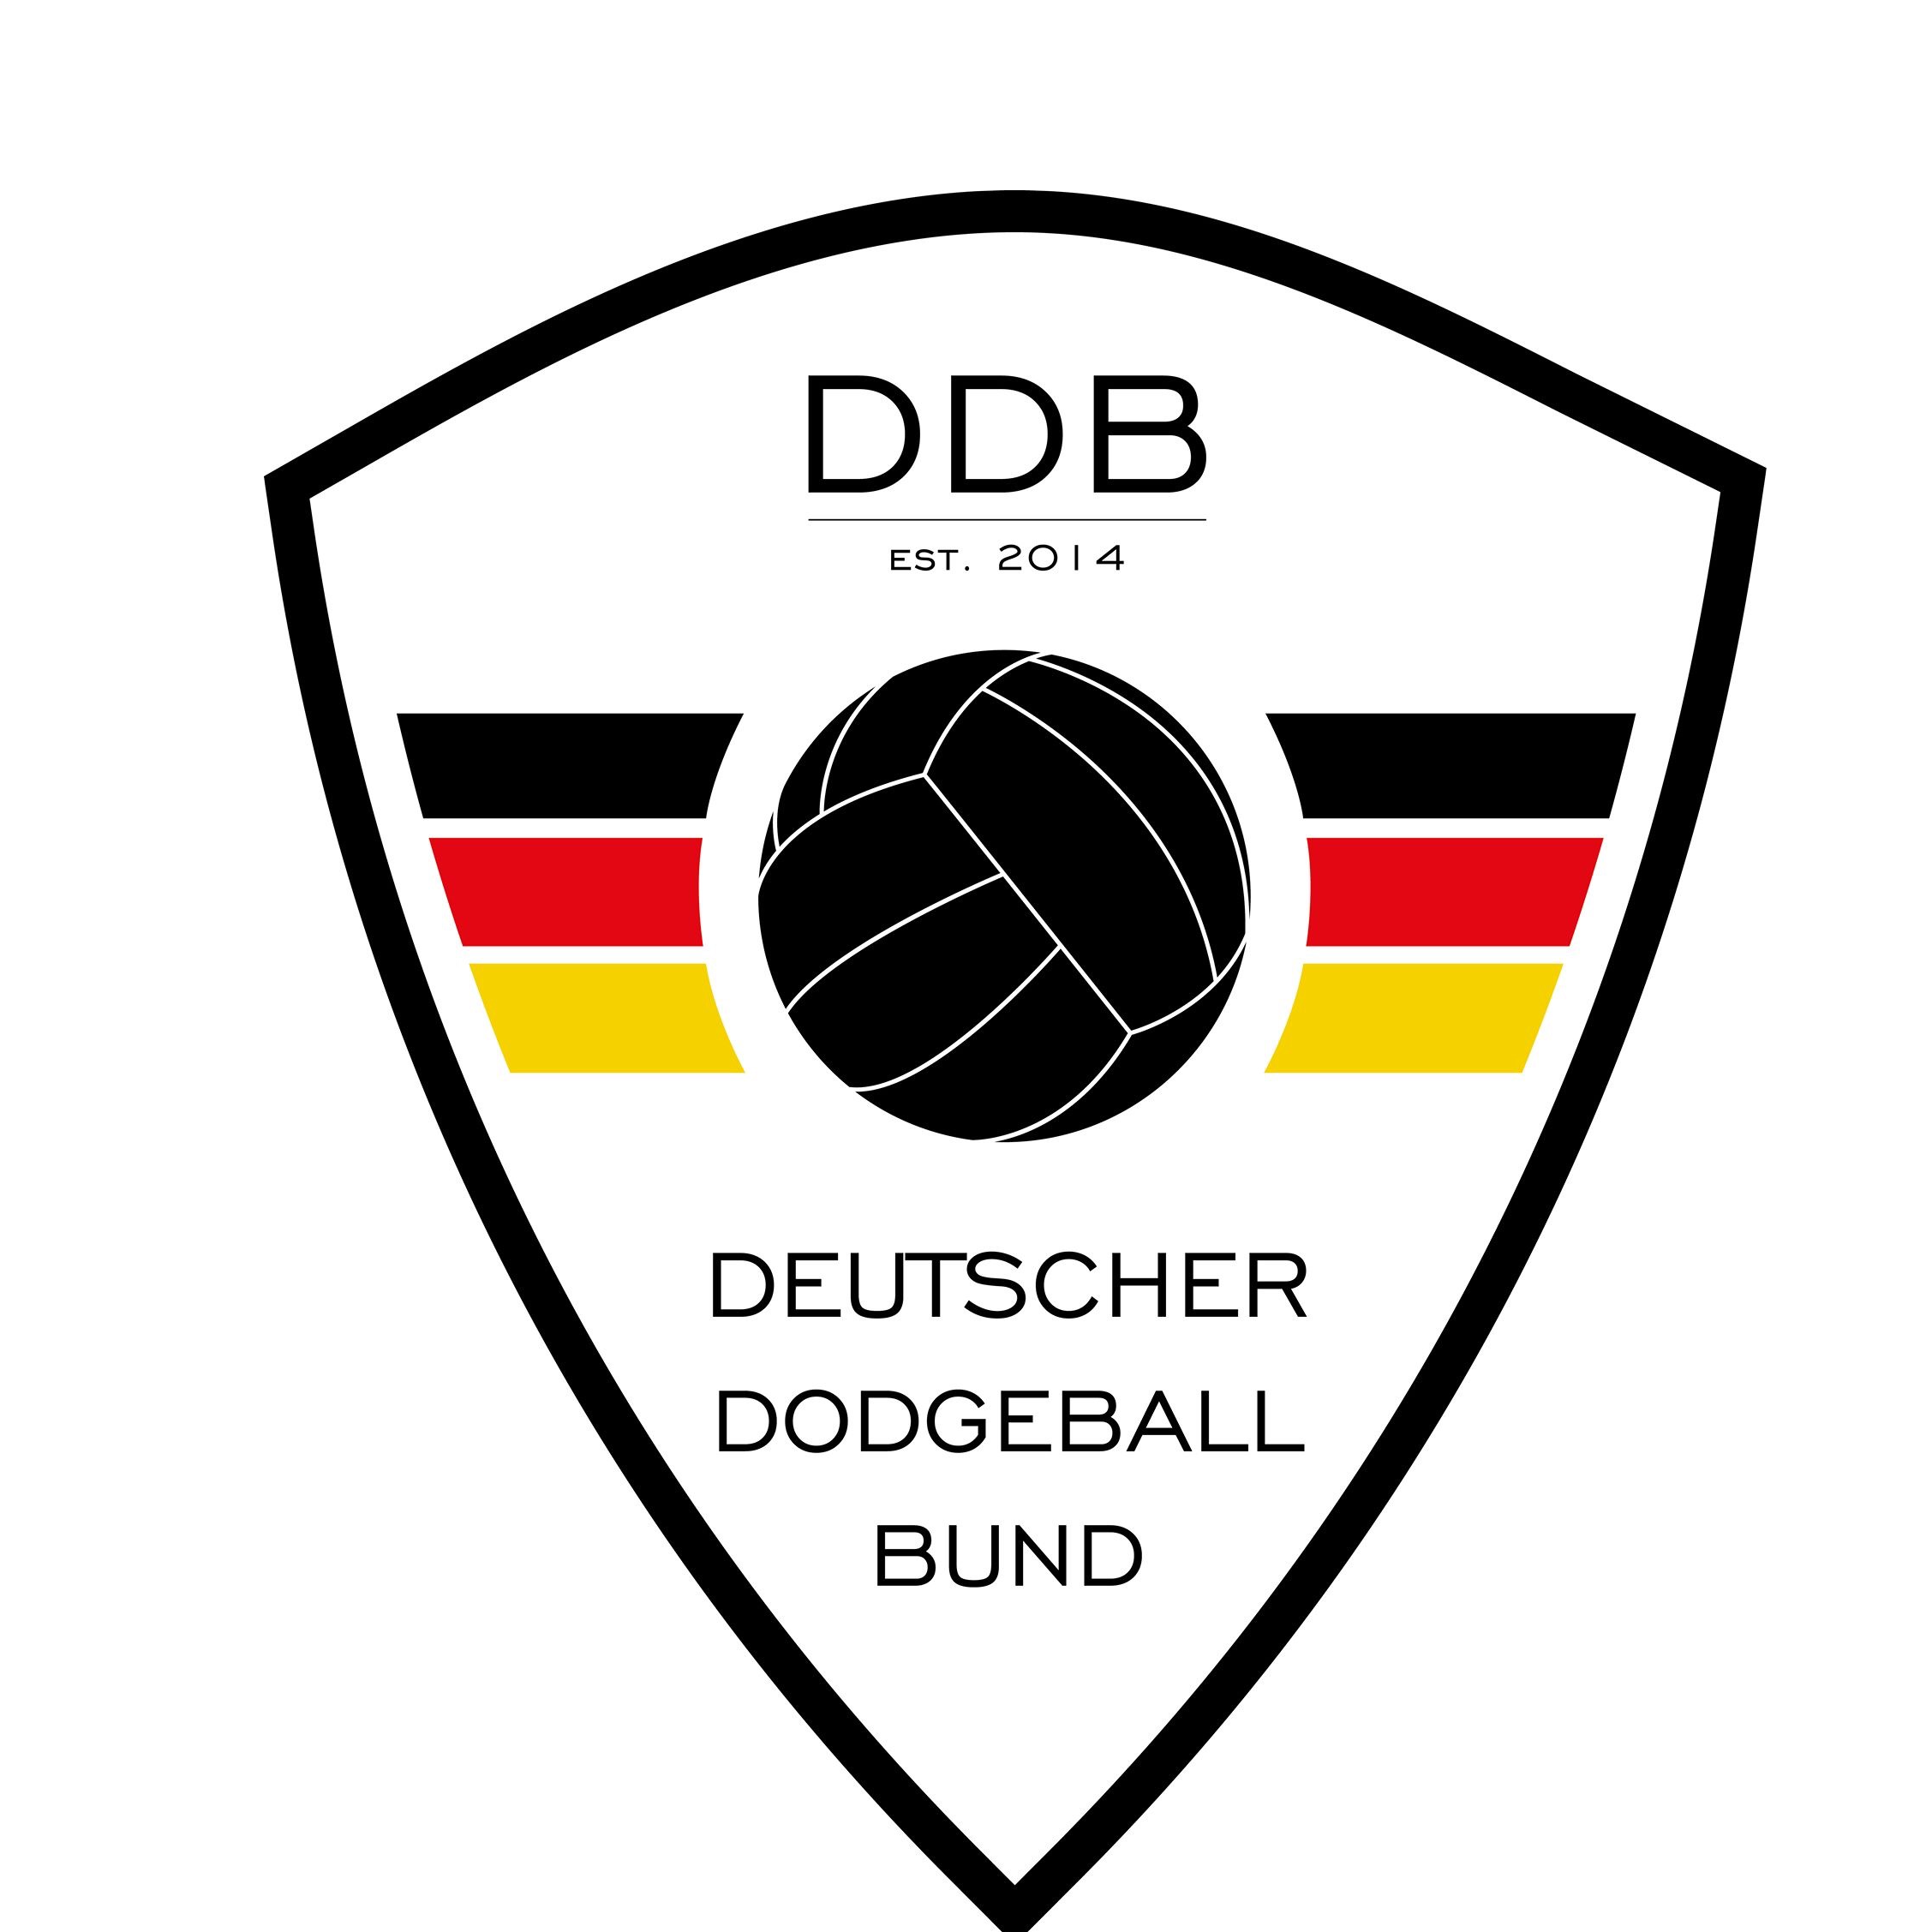 ball deutsch